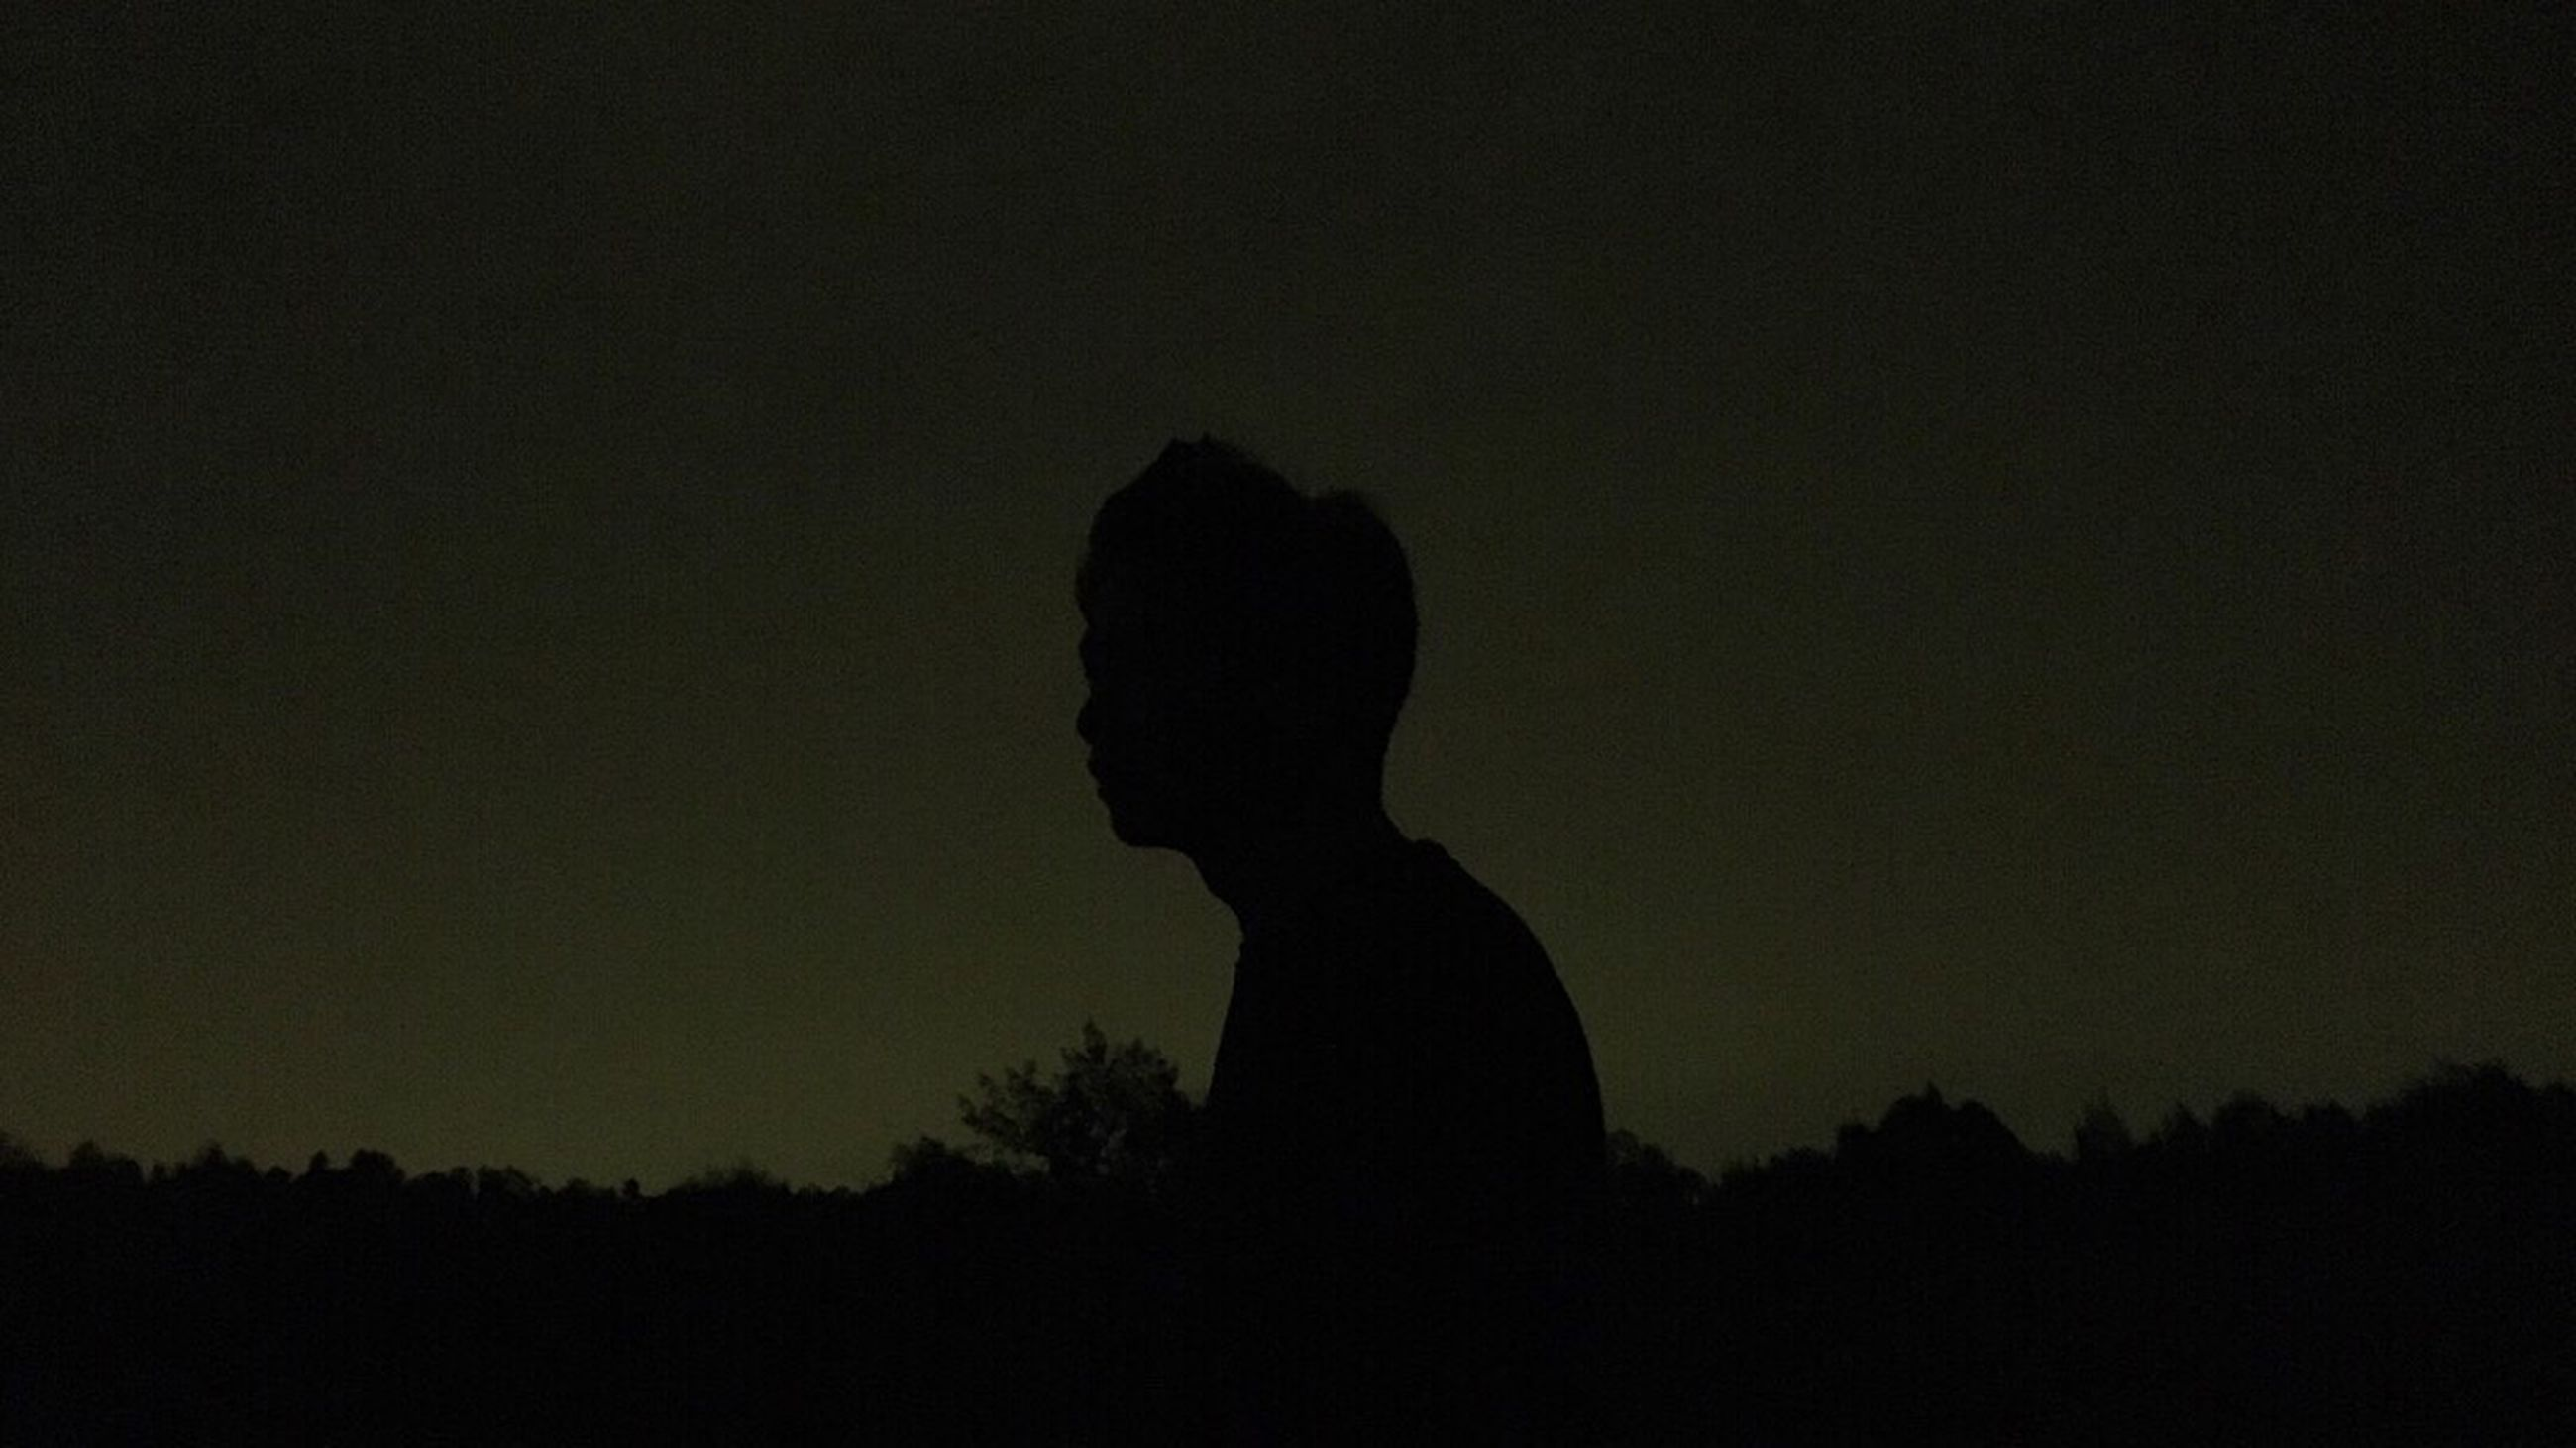 silhouette, real people, one person, sunset, men, leisure activity, nature, lifestyles, women, tree, outdoors, night, sky, beauty in nature, people